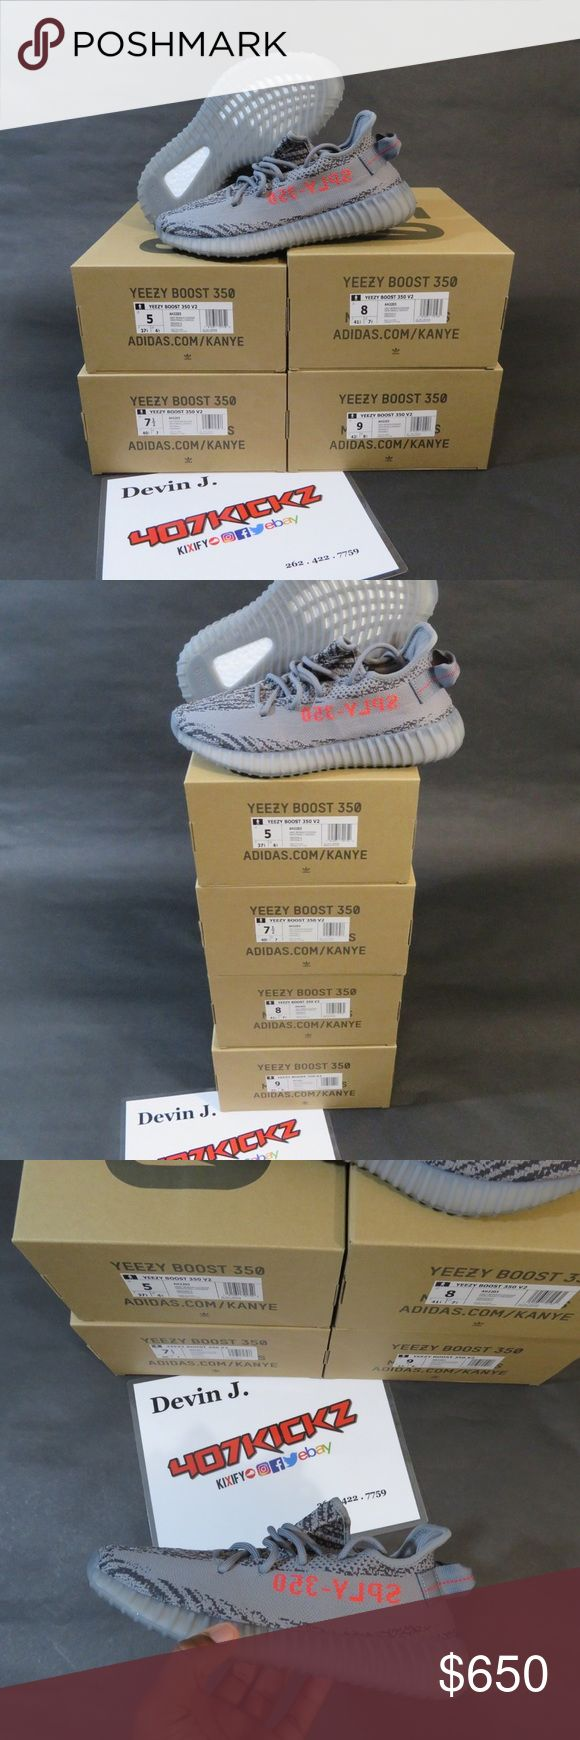 Yeezy v2 Beluga 2.0 Adidas Yeezy Boost 350 V2 Beluga 2.0 [AH2203] (2017) | Sizes 5, 9, and 12 Left | DS BRAND NEW | Original Box , 100% Authentic as Always (purchased from adidas site) I understand the hesitation you may have buying Yeezys but i can ensure you these are all authentic. I can print order screenshots and charges from adidas.com to include in the order to encourage you to buy with extreme confidence. I run a very legit business and take my reputation seriously. Thanks for ...